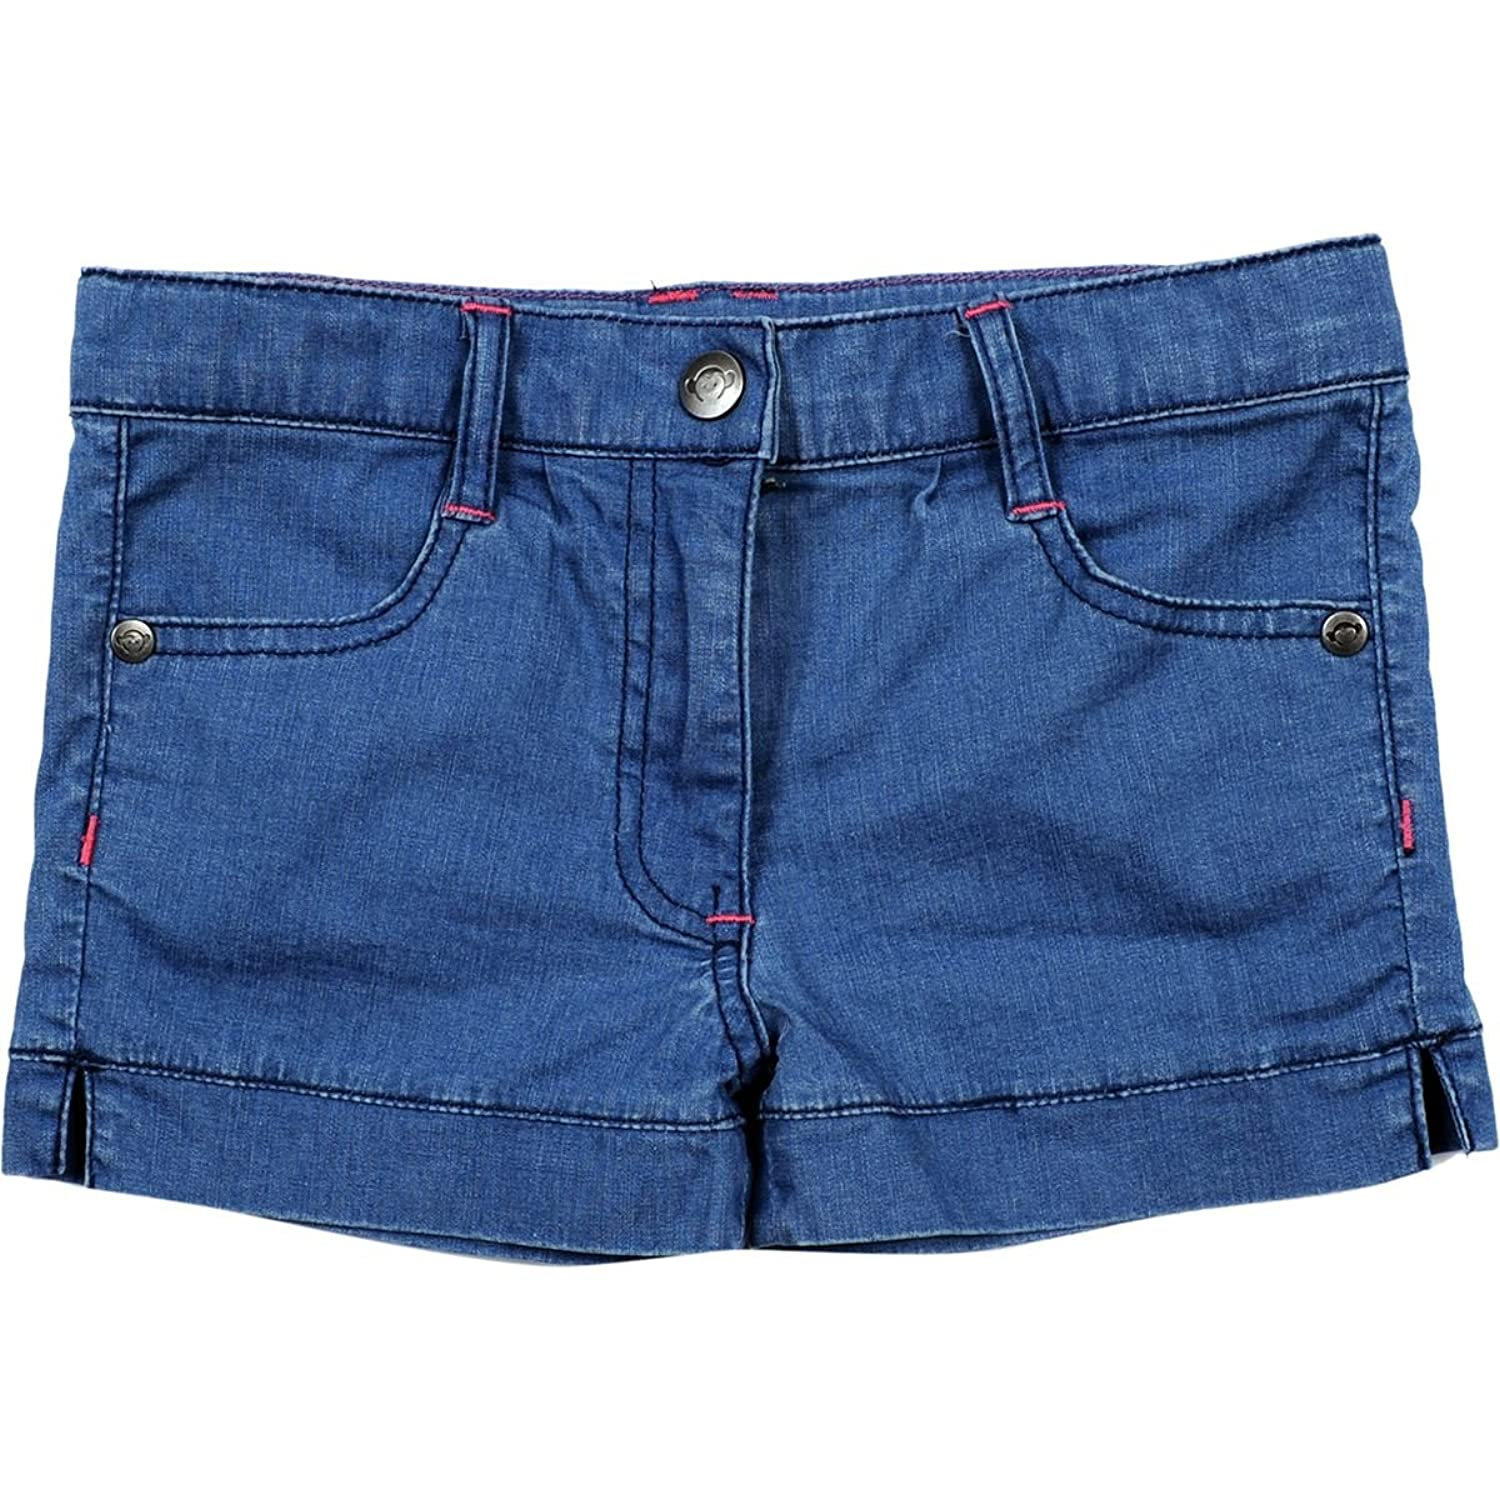 Appaman Kids Womens Elba Shorts (Toddler/Little Kids/Big Kids)